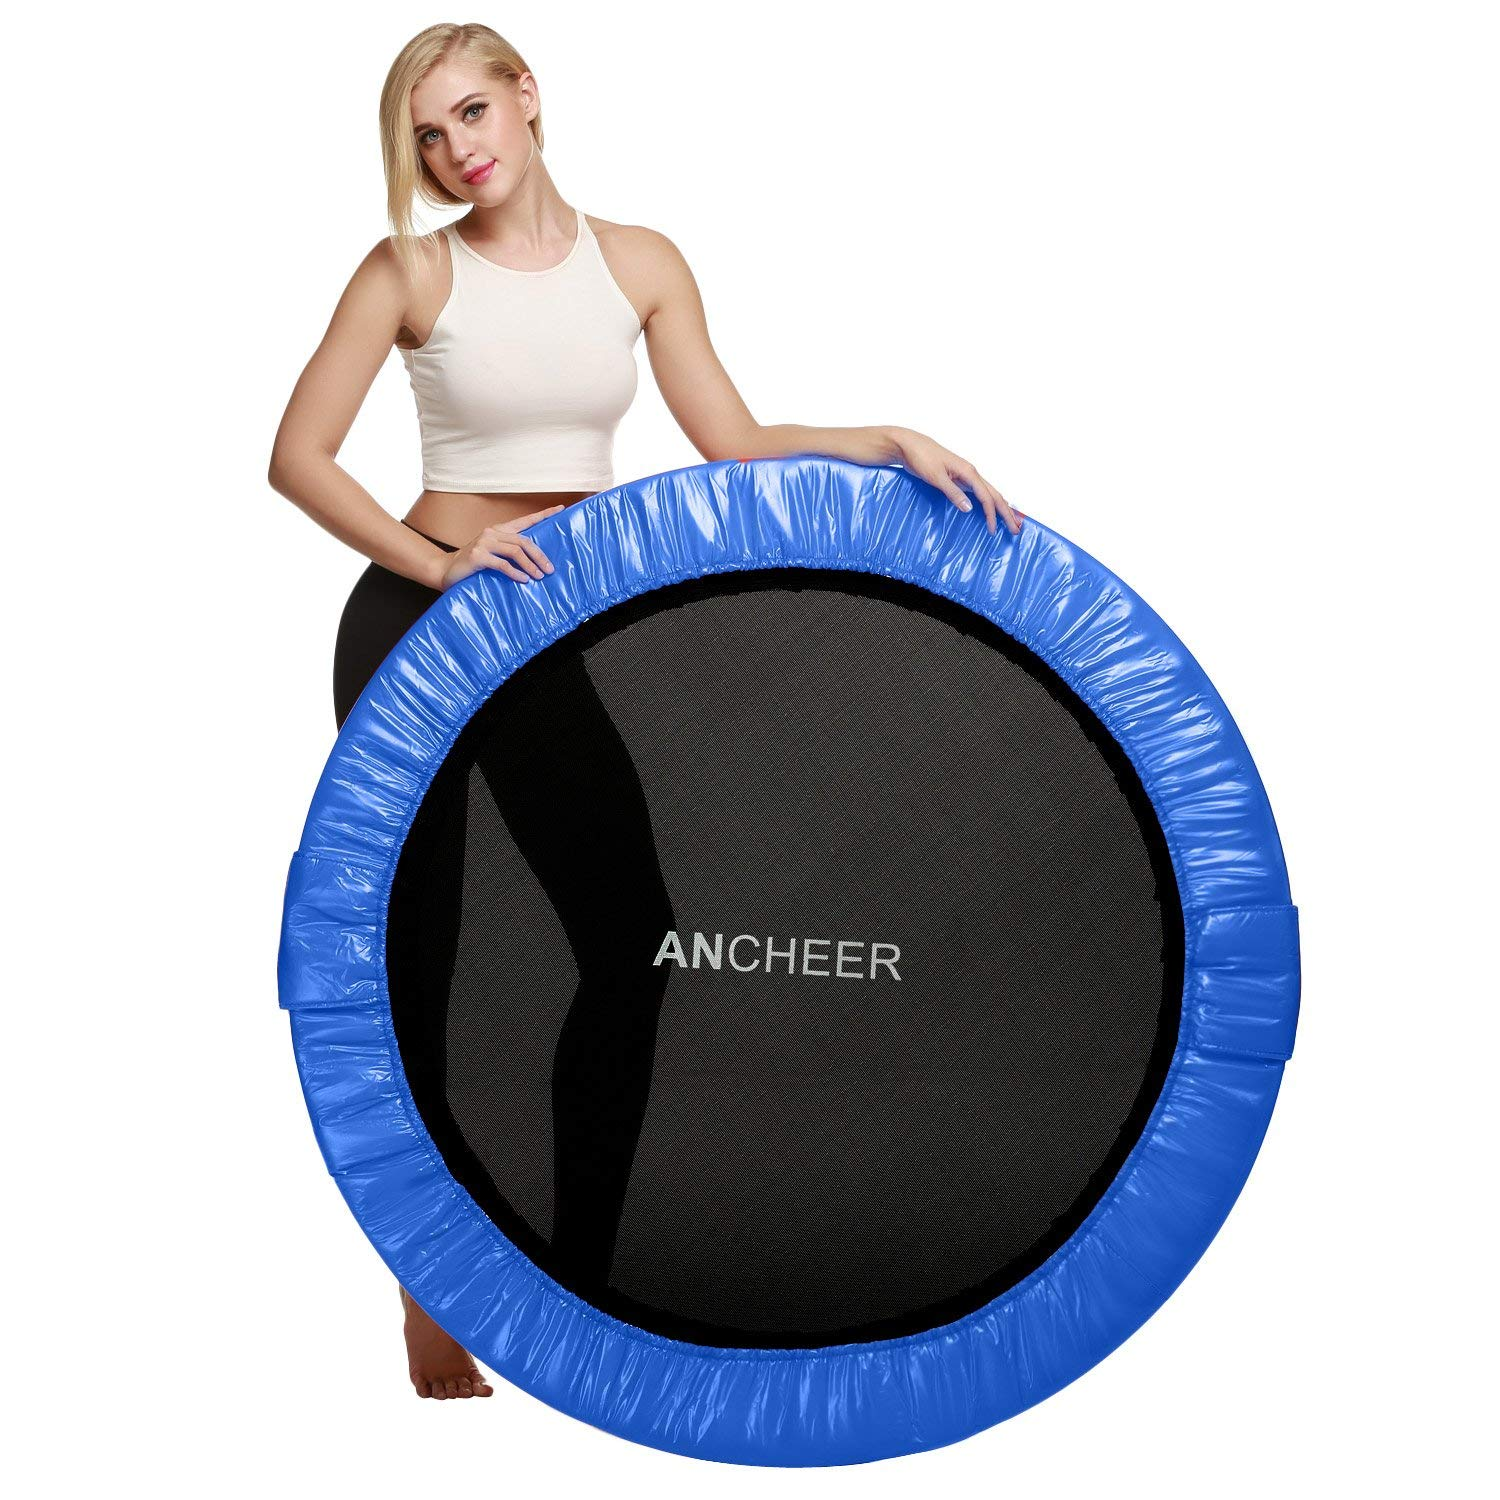 ANCHEER Max Load 220lbs Rebounder Trampoline with Safety Pad for Indoor Garden Workout Cardio Training (2 Sizes: 38 inch/40 inch, Two Modes: Folding/Not Folding) (Renewed) by ANCHEER (Image #8)